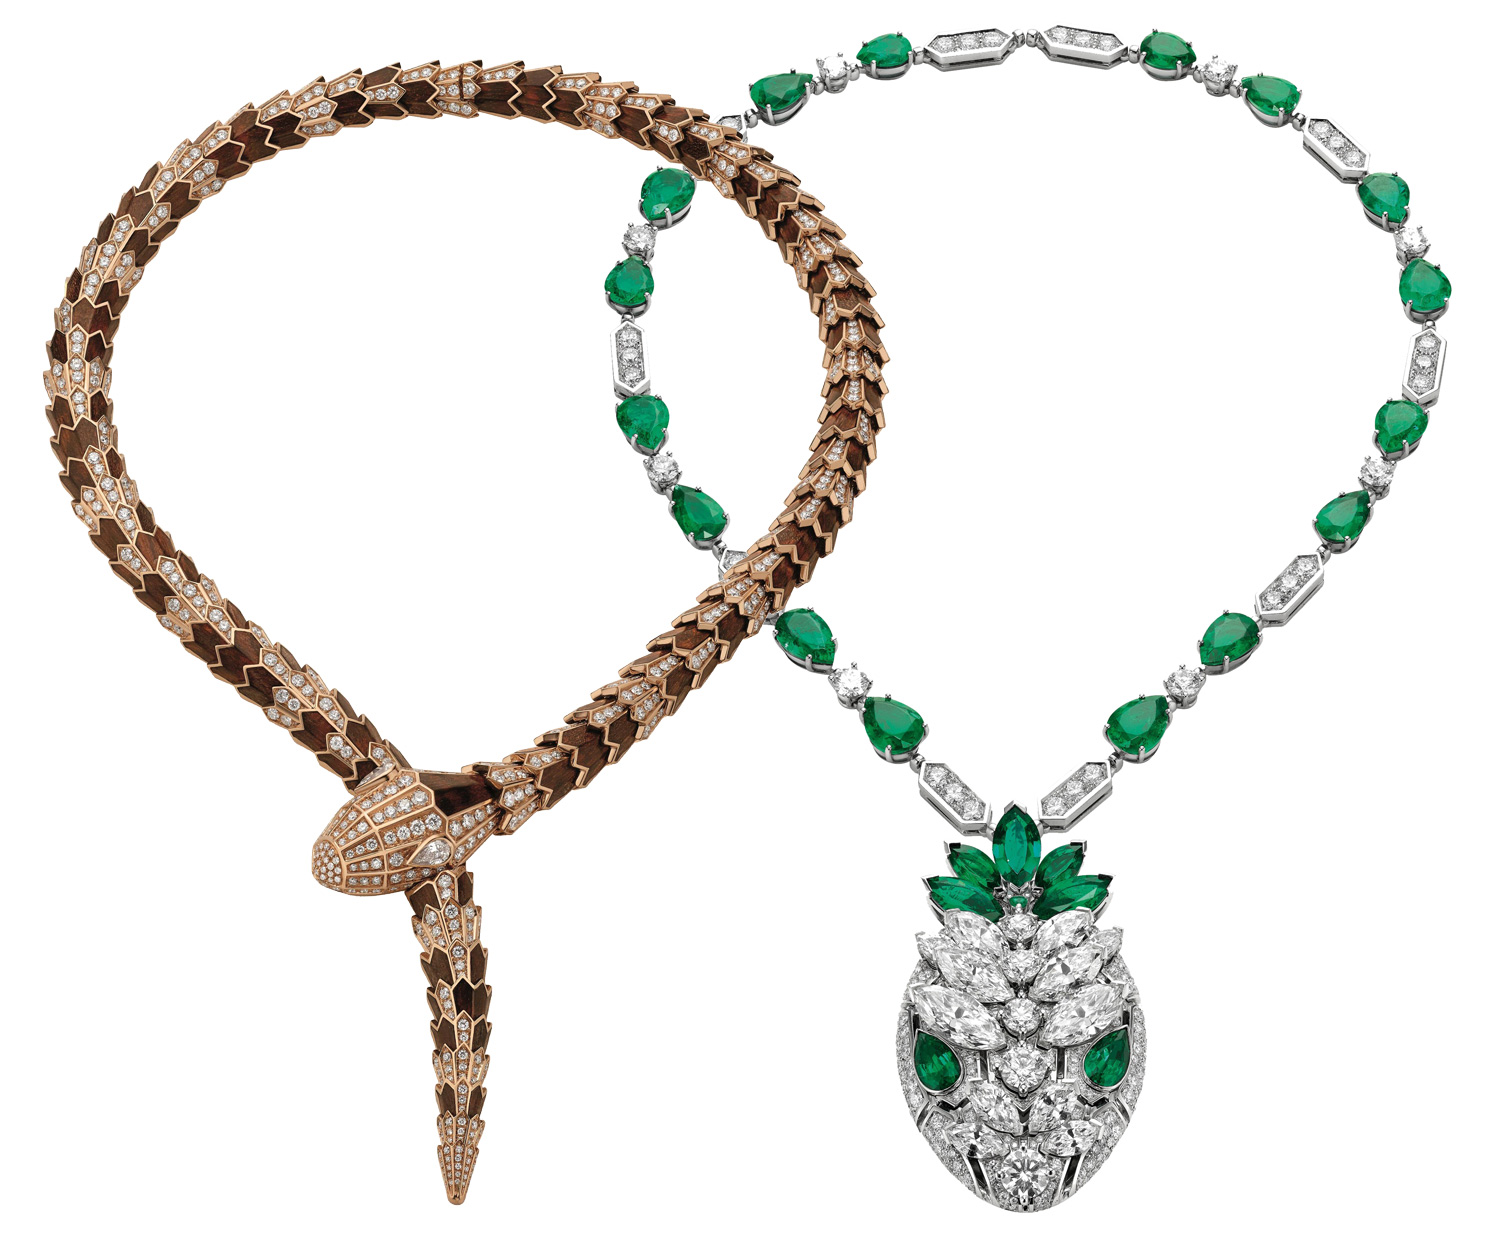 Bvlgari Serpenti Form Exhibition